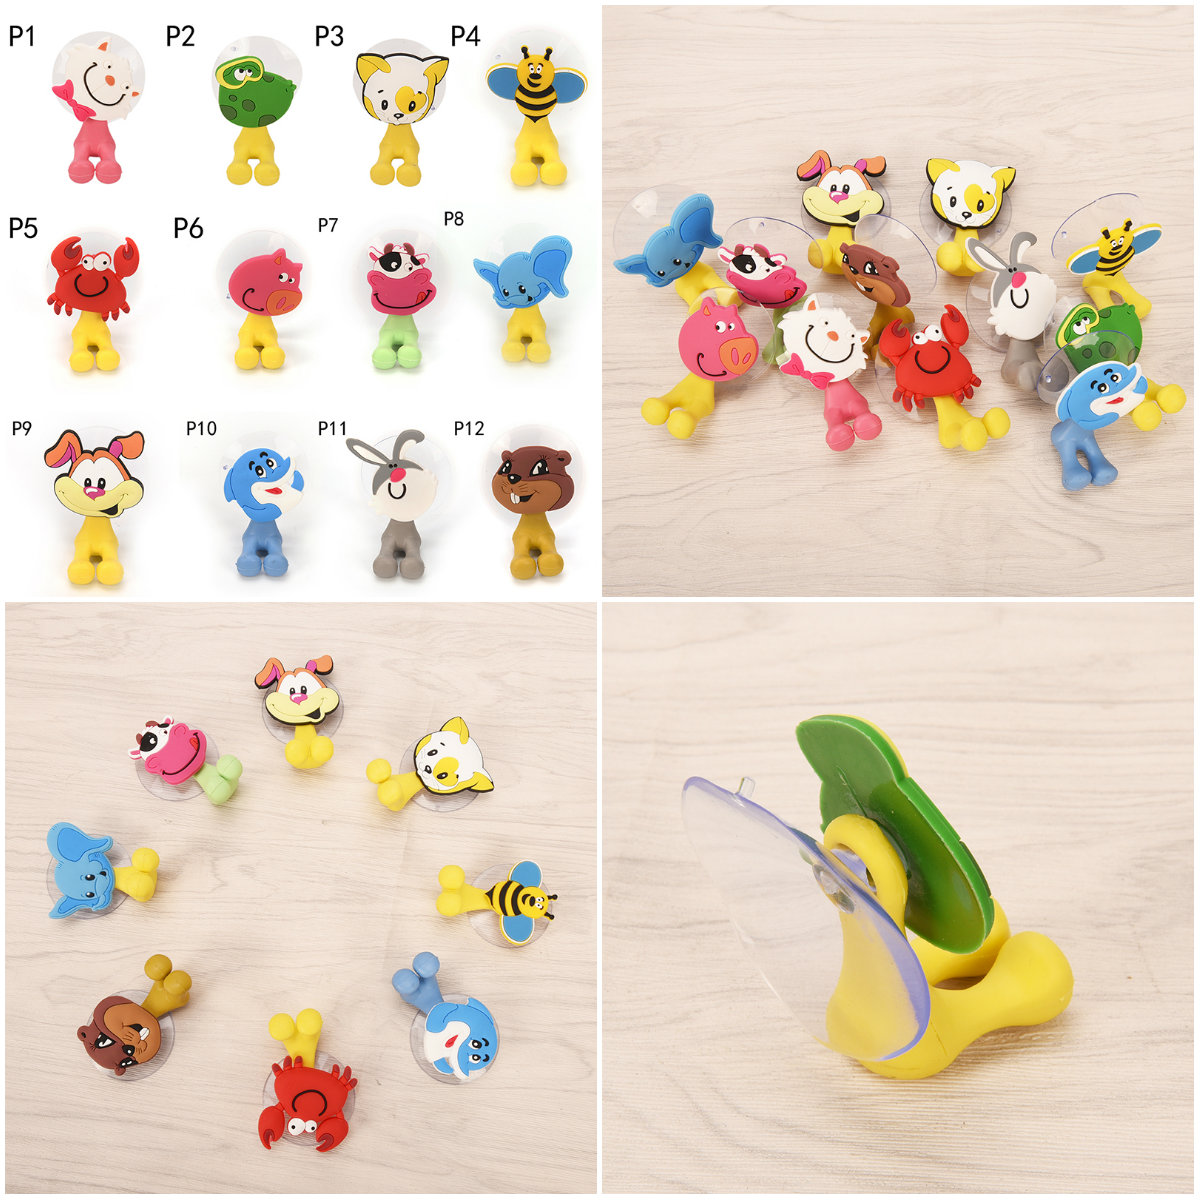 12 Styles Cartoon Cute Animals Suction Cup Toothbrush Holder Wall Suction Holder Tool Bathroom Accessories